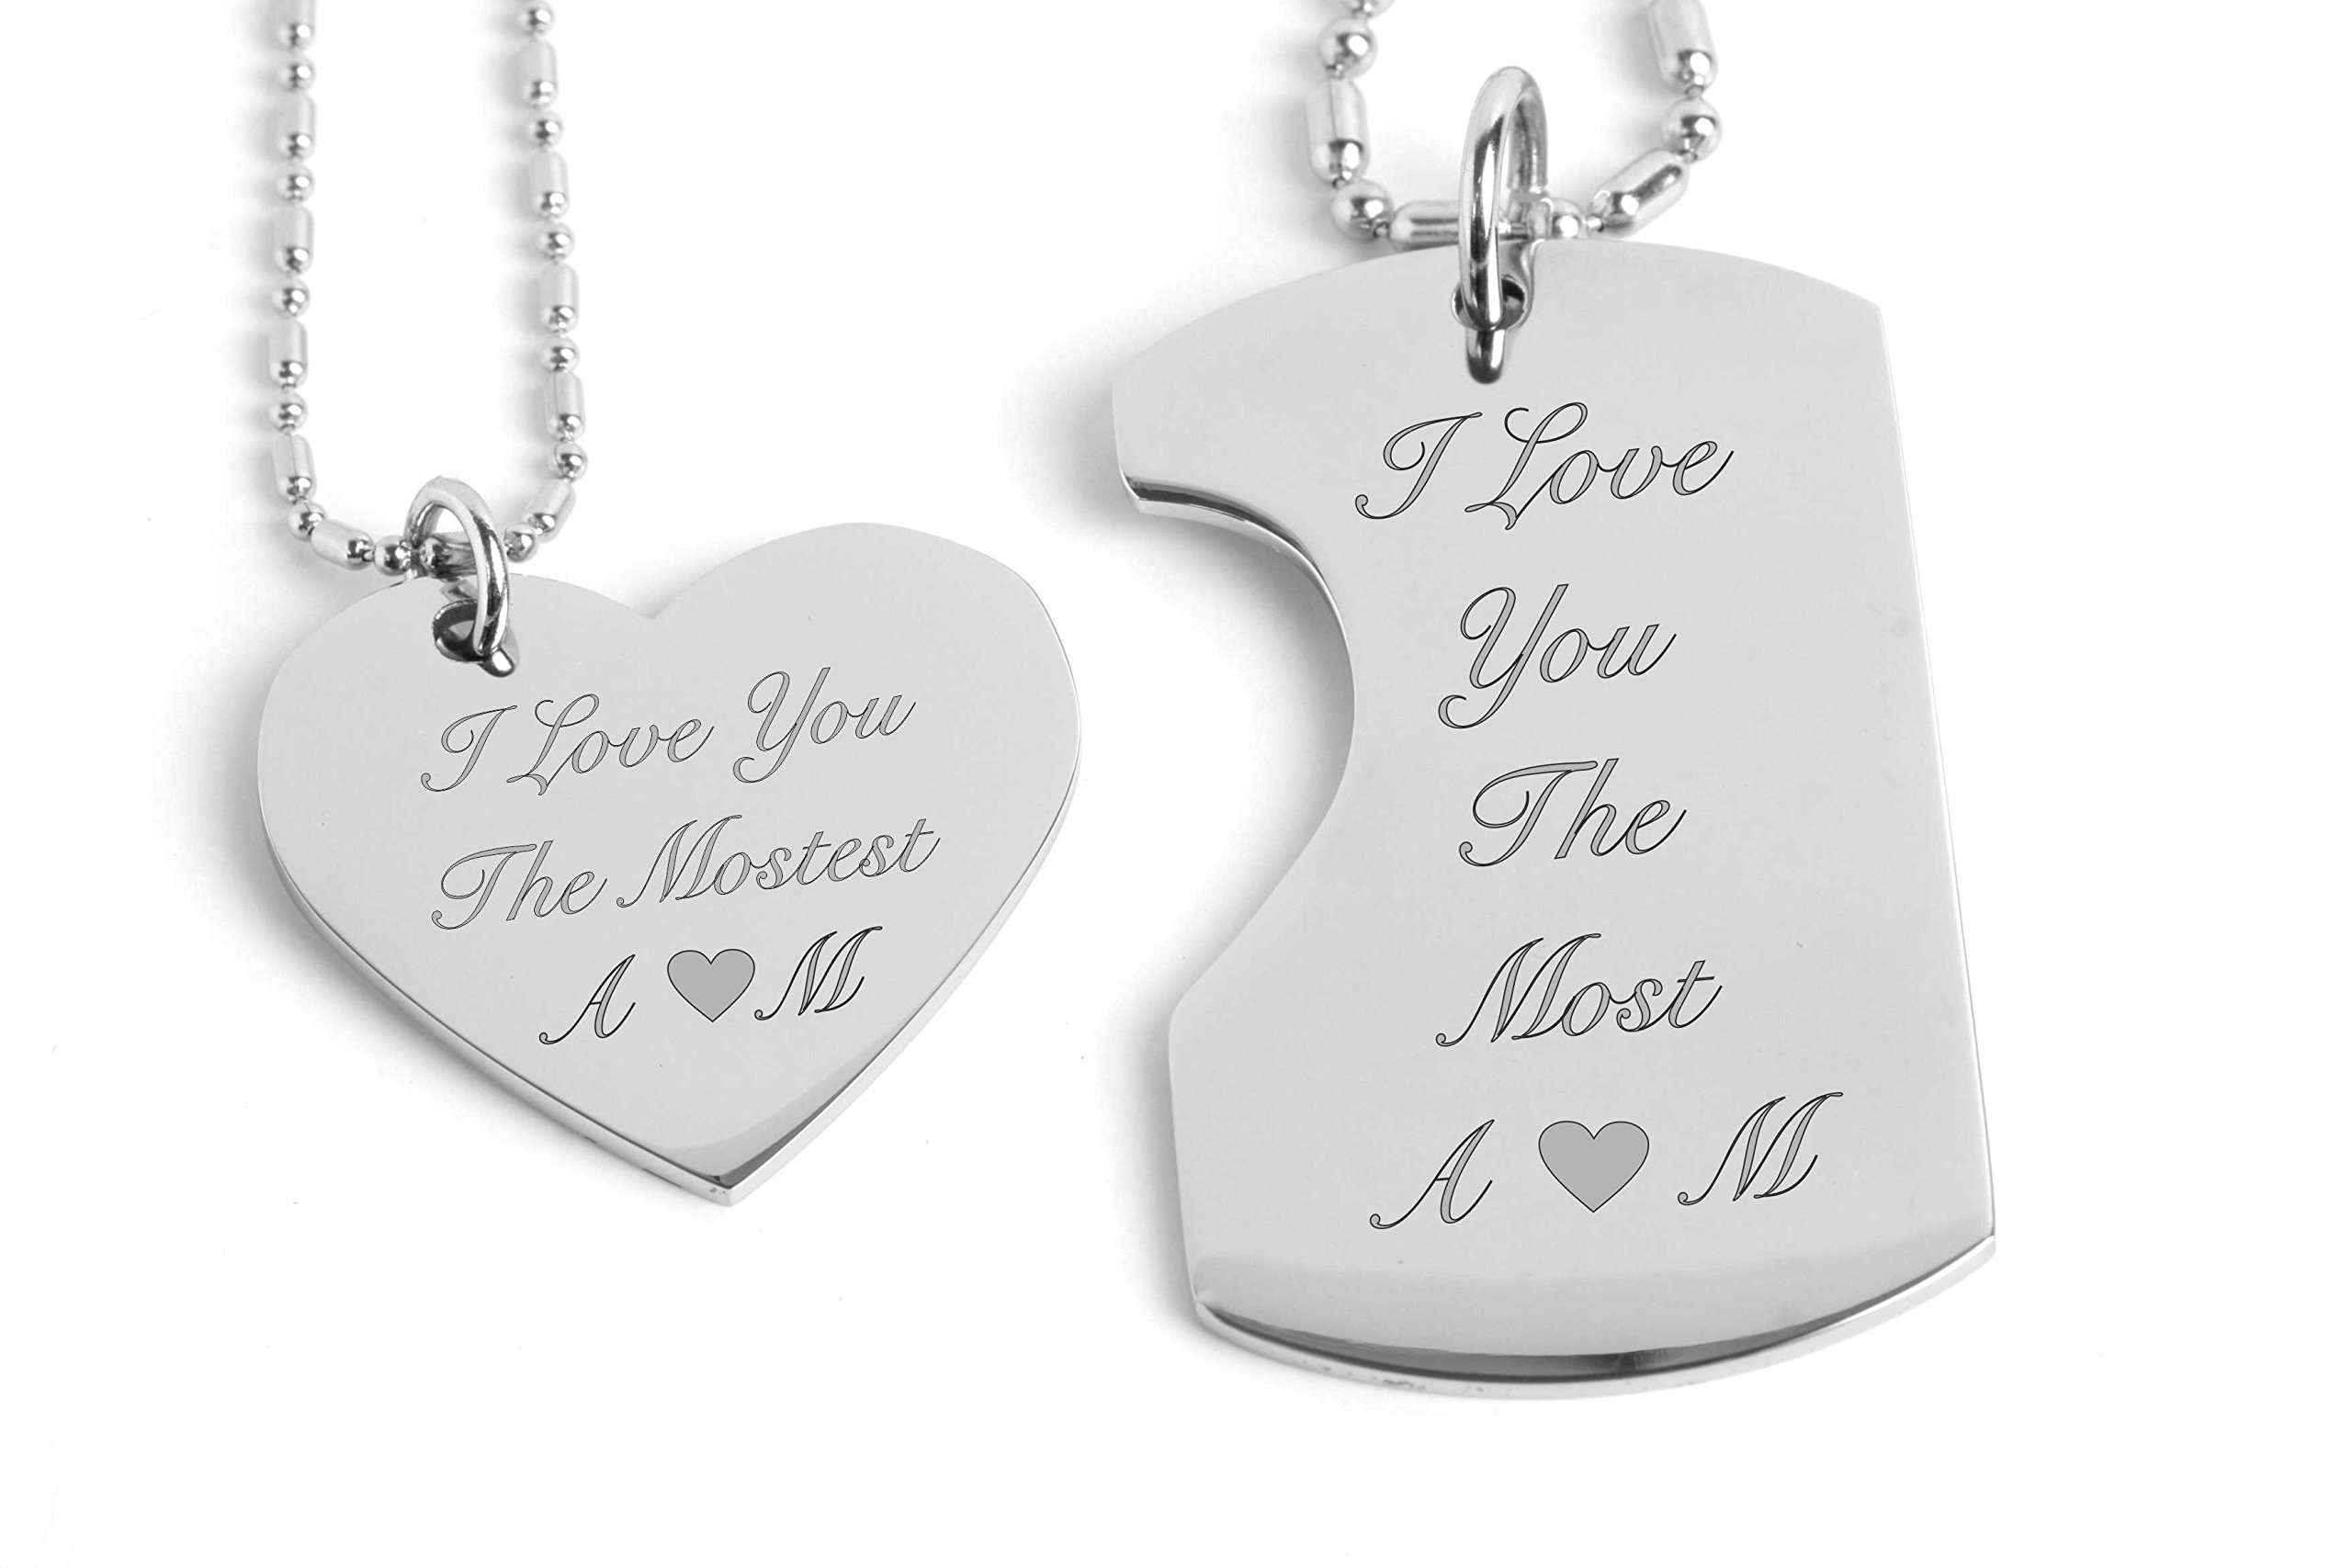 Personalized Dog Tag With Heart Necklace Set